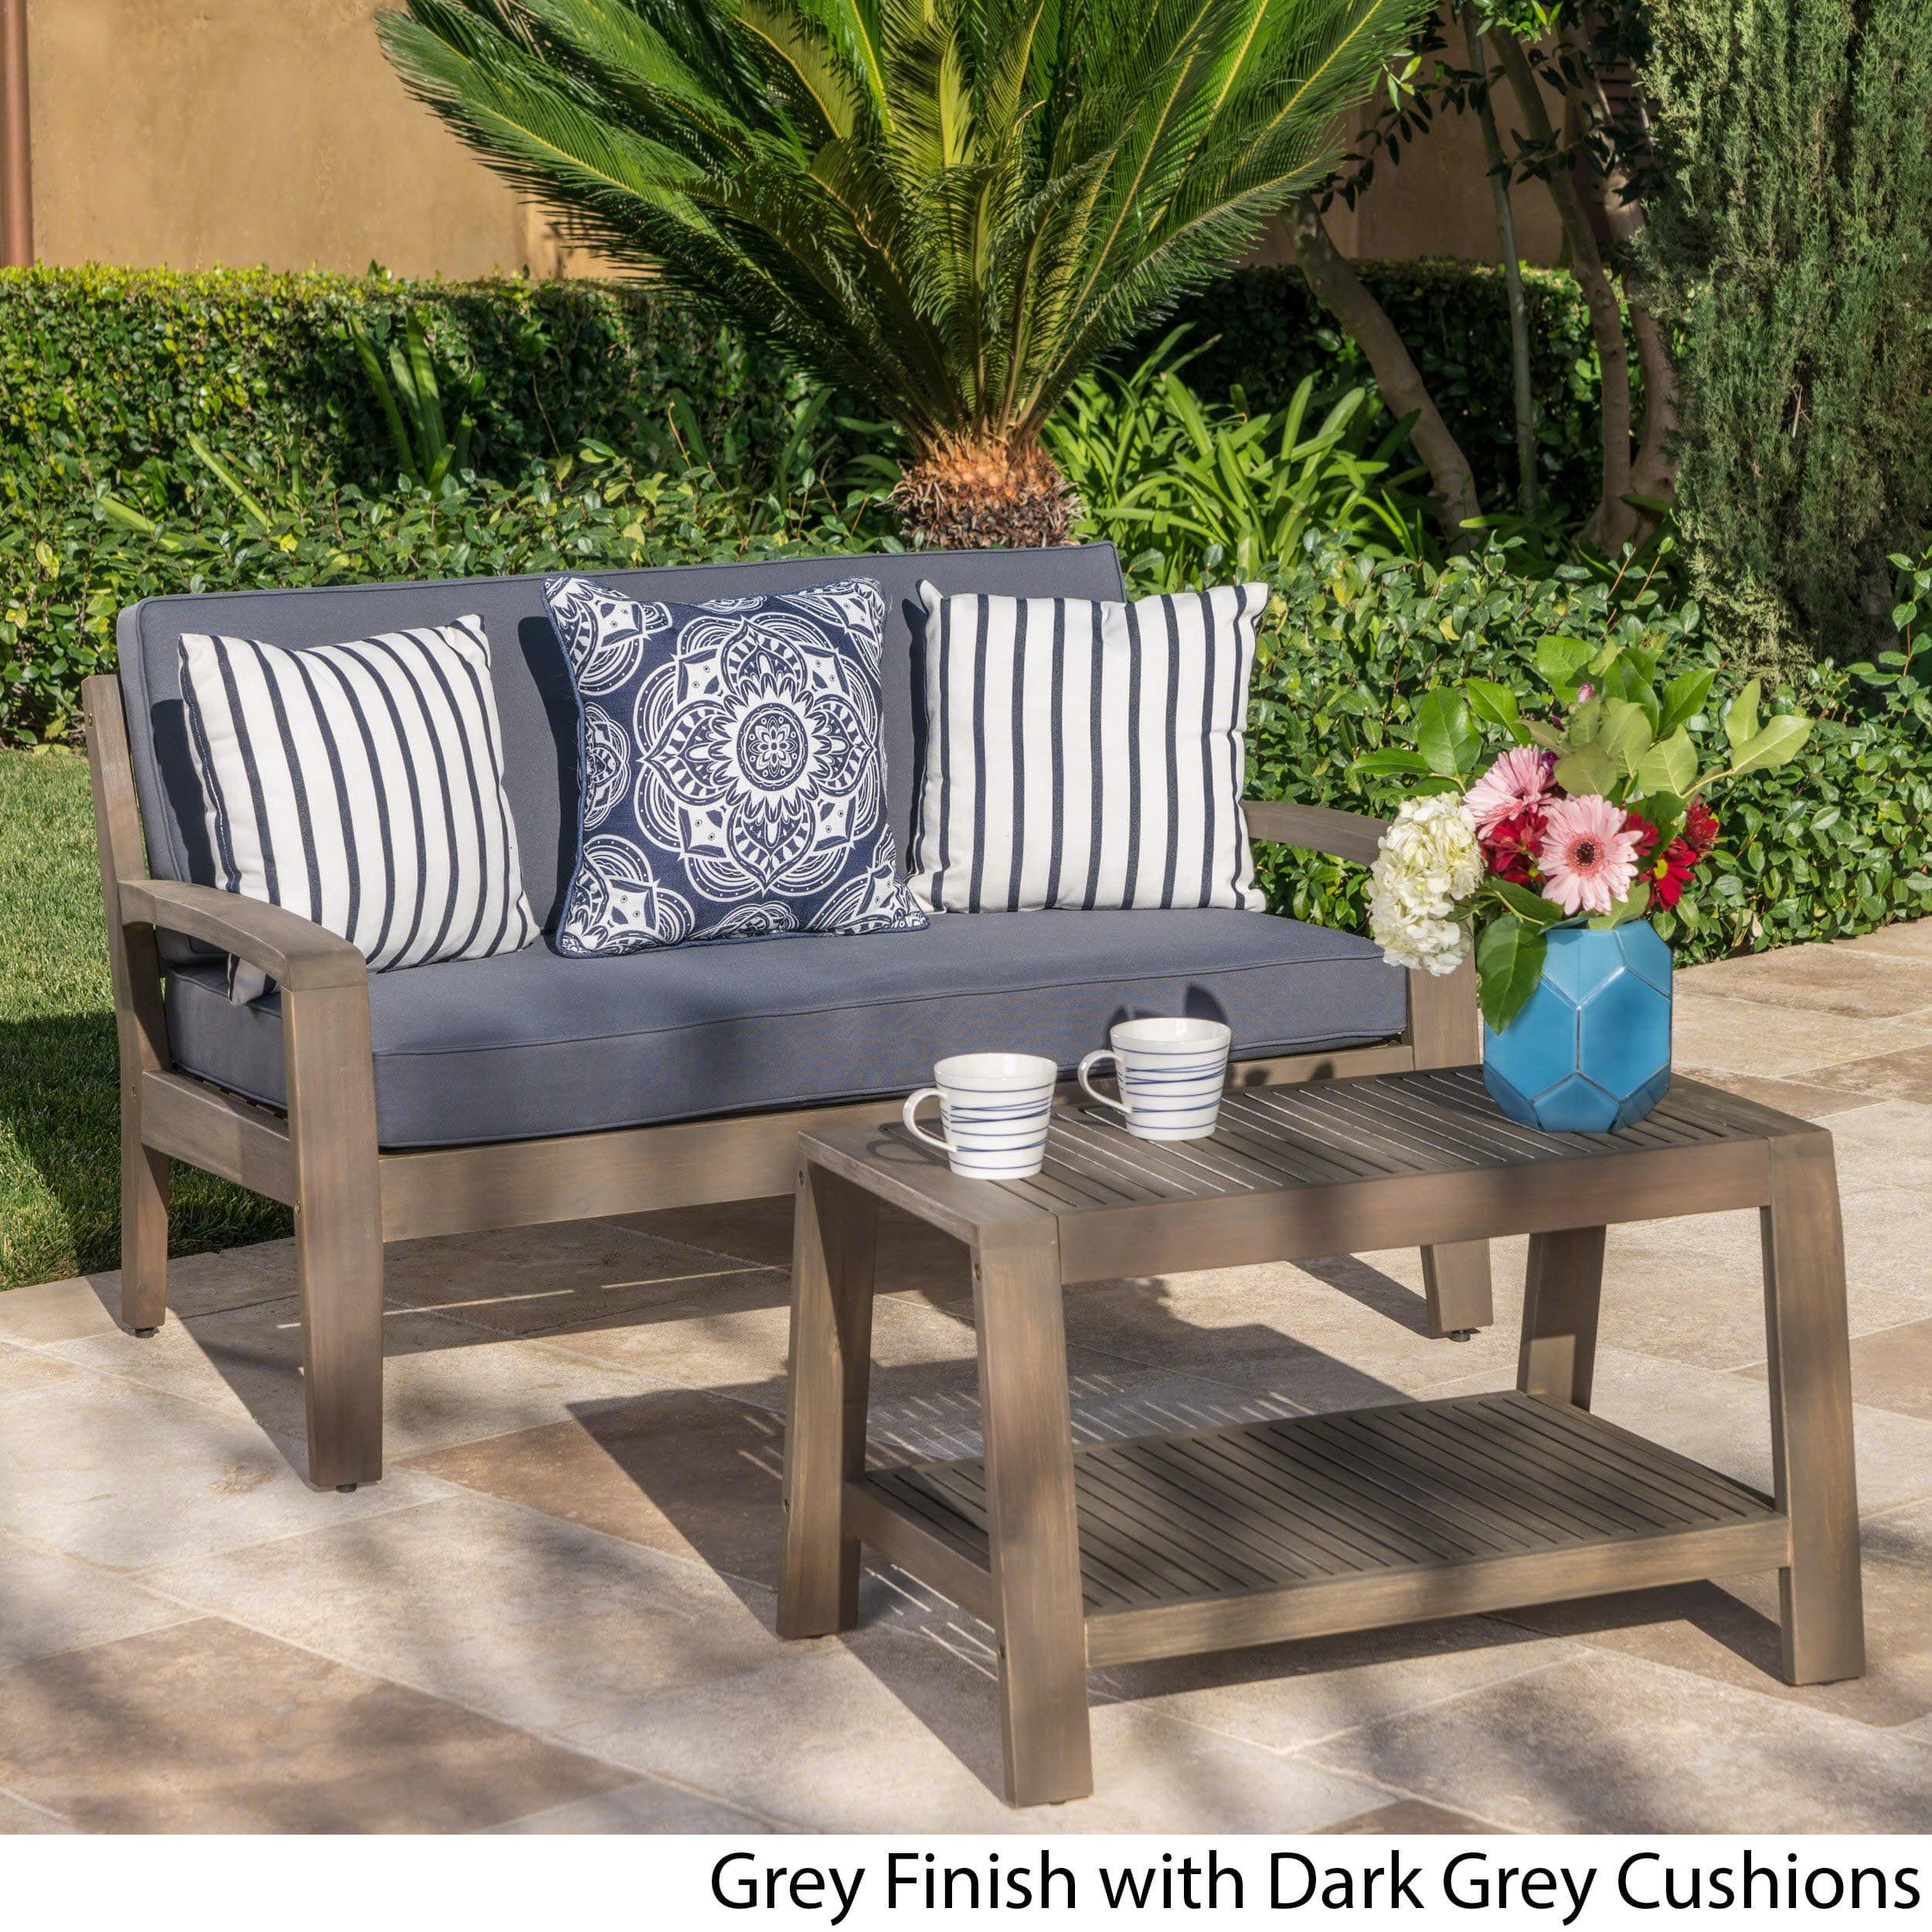 Grenada outdoor 2 piece acacia wood loveseat and coffee brown table set with cushions by christopher knight home grey finish dark grey cushions